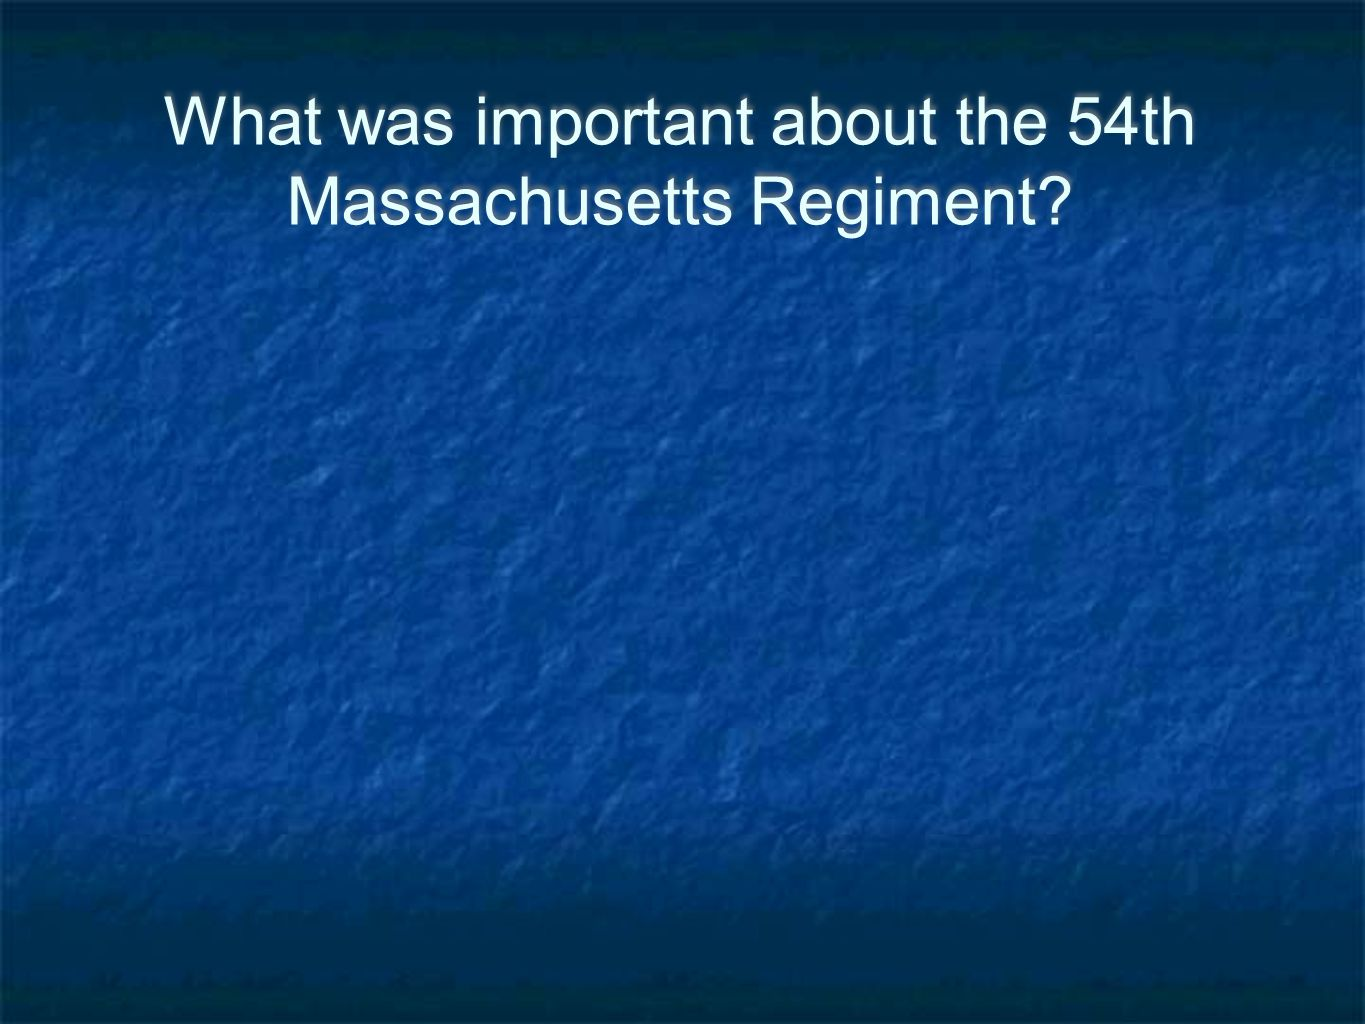 What was important about the 54th Massachusetts Regiment